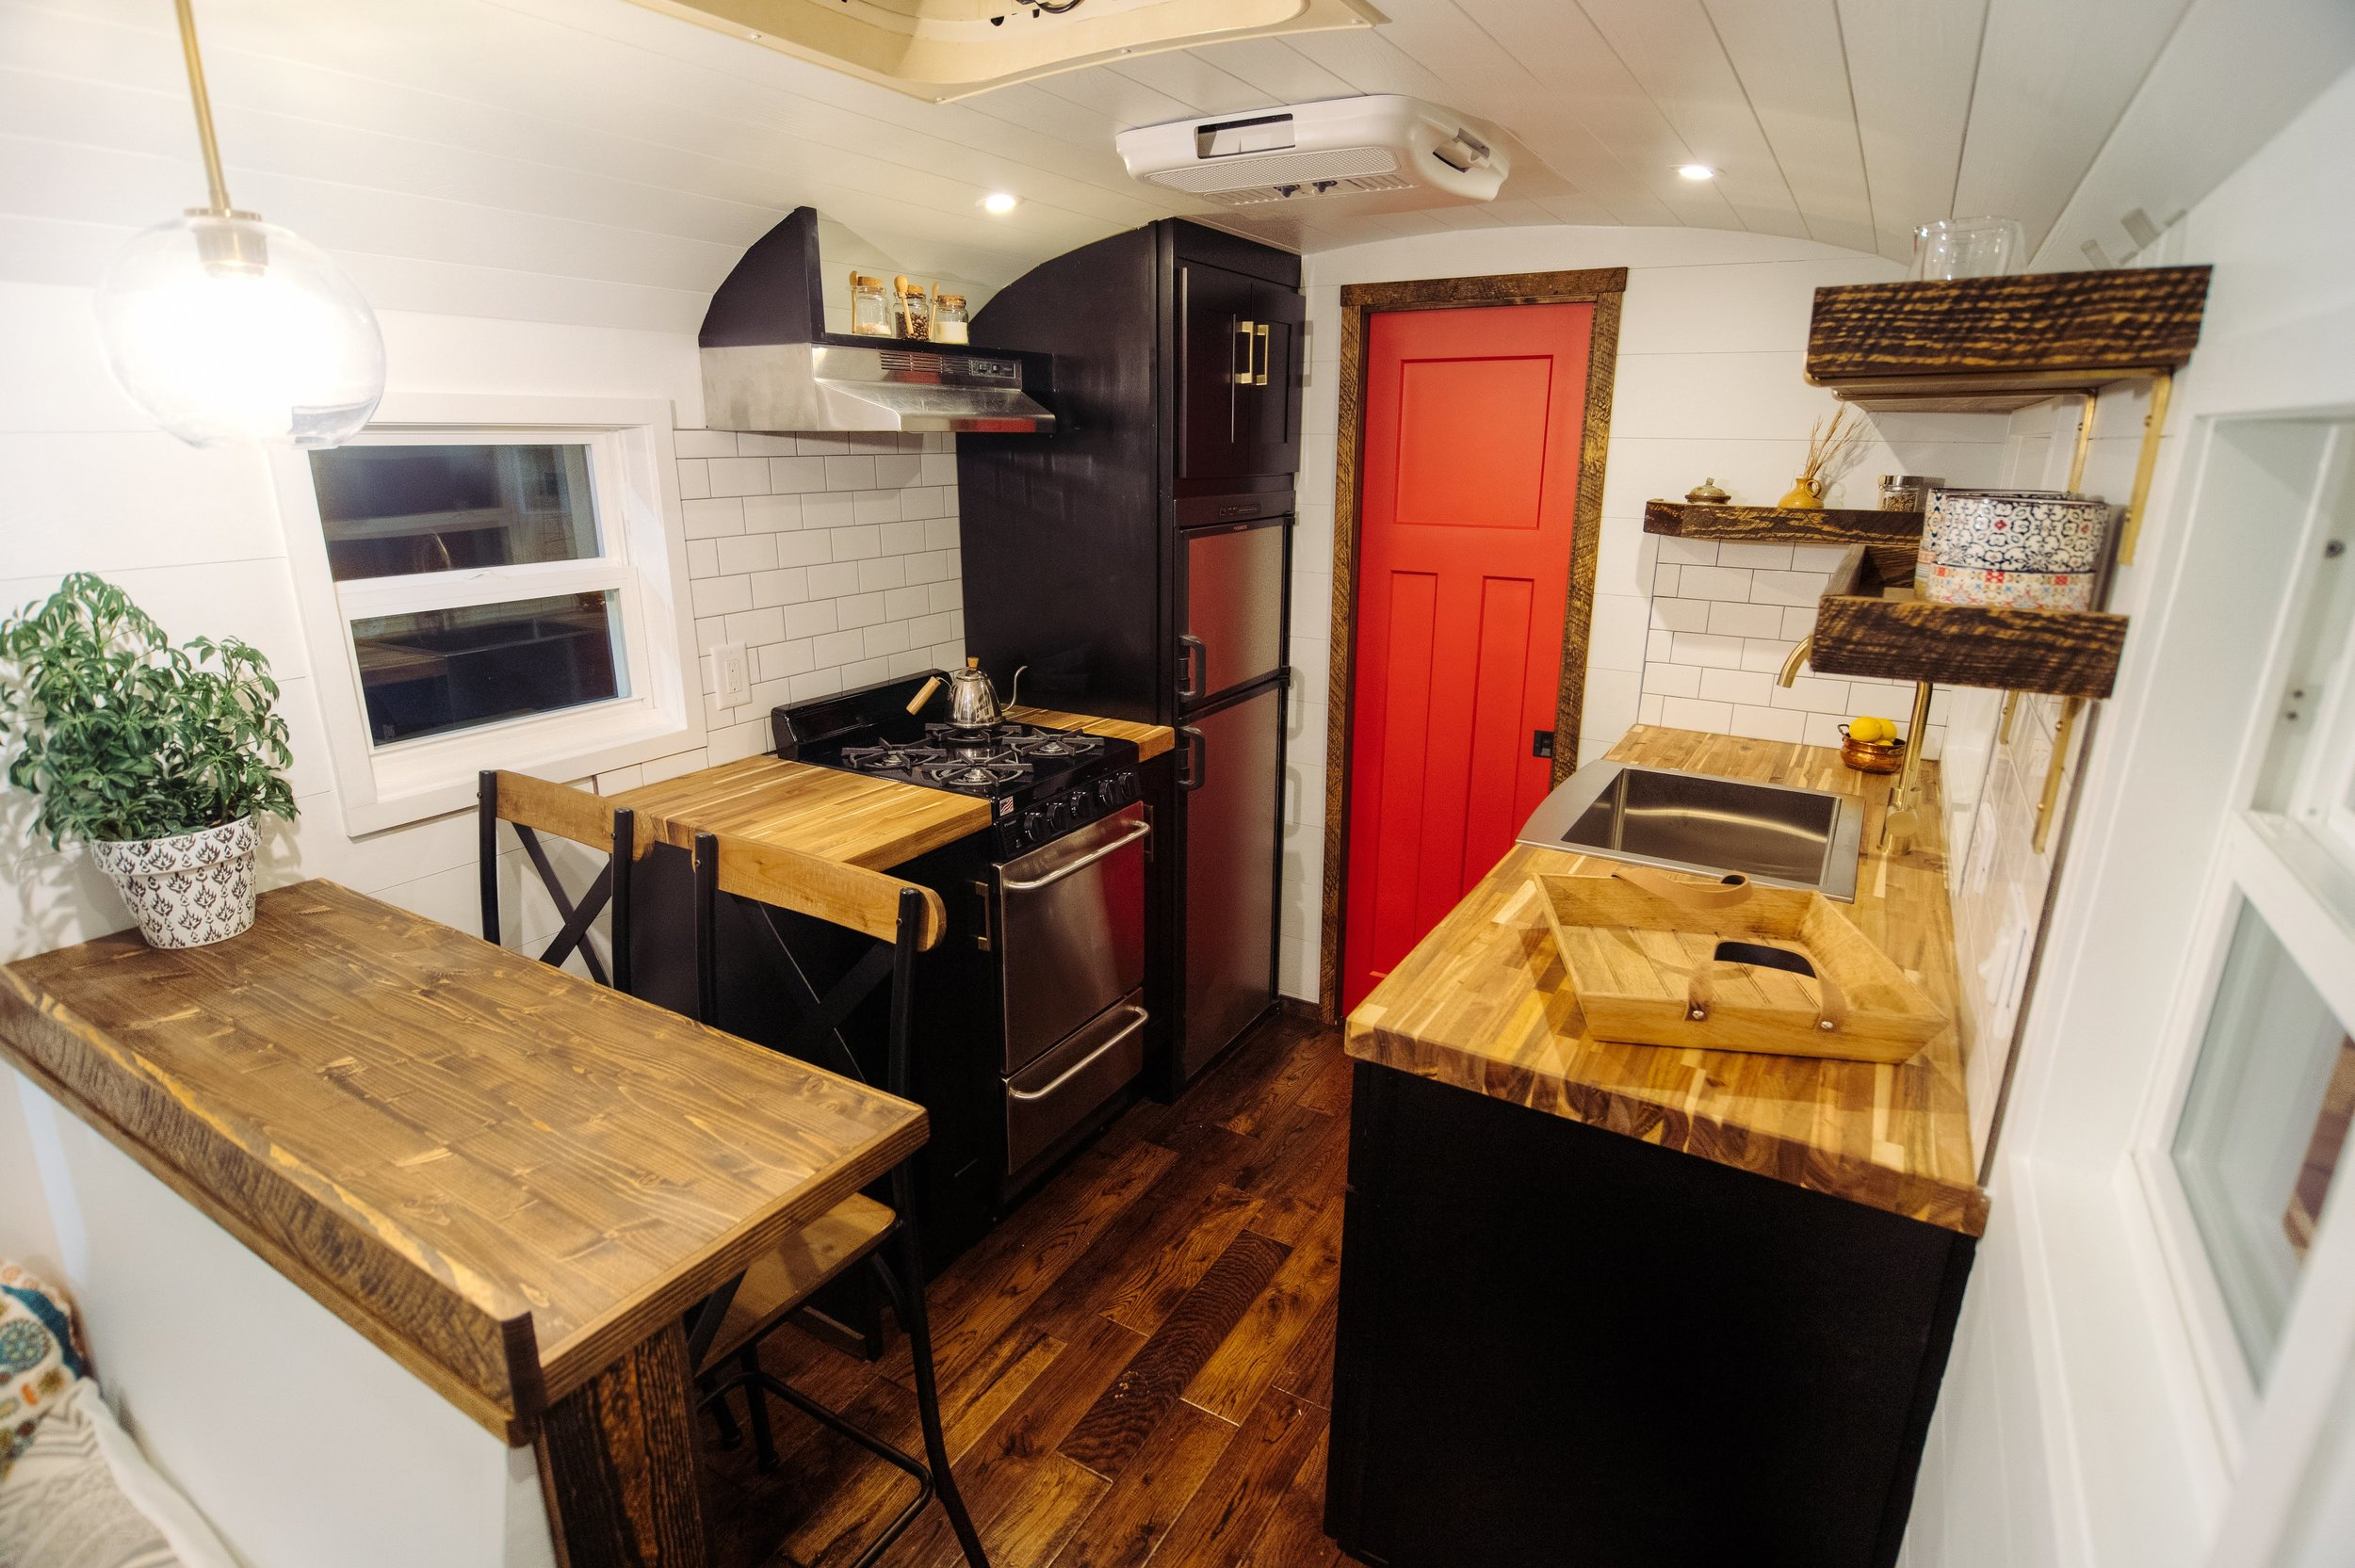 The Greyhound Skoolie by Wind River Tiny Homes